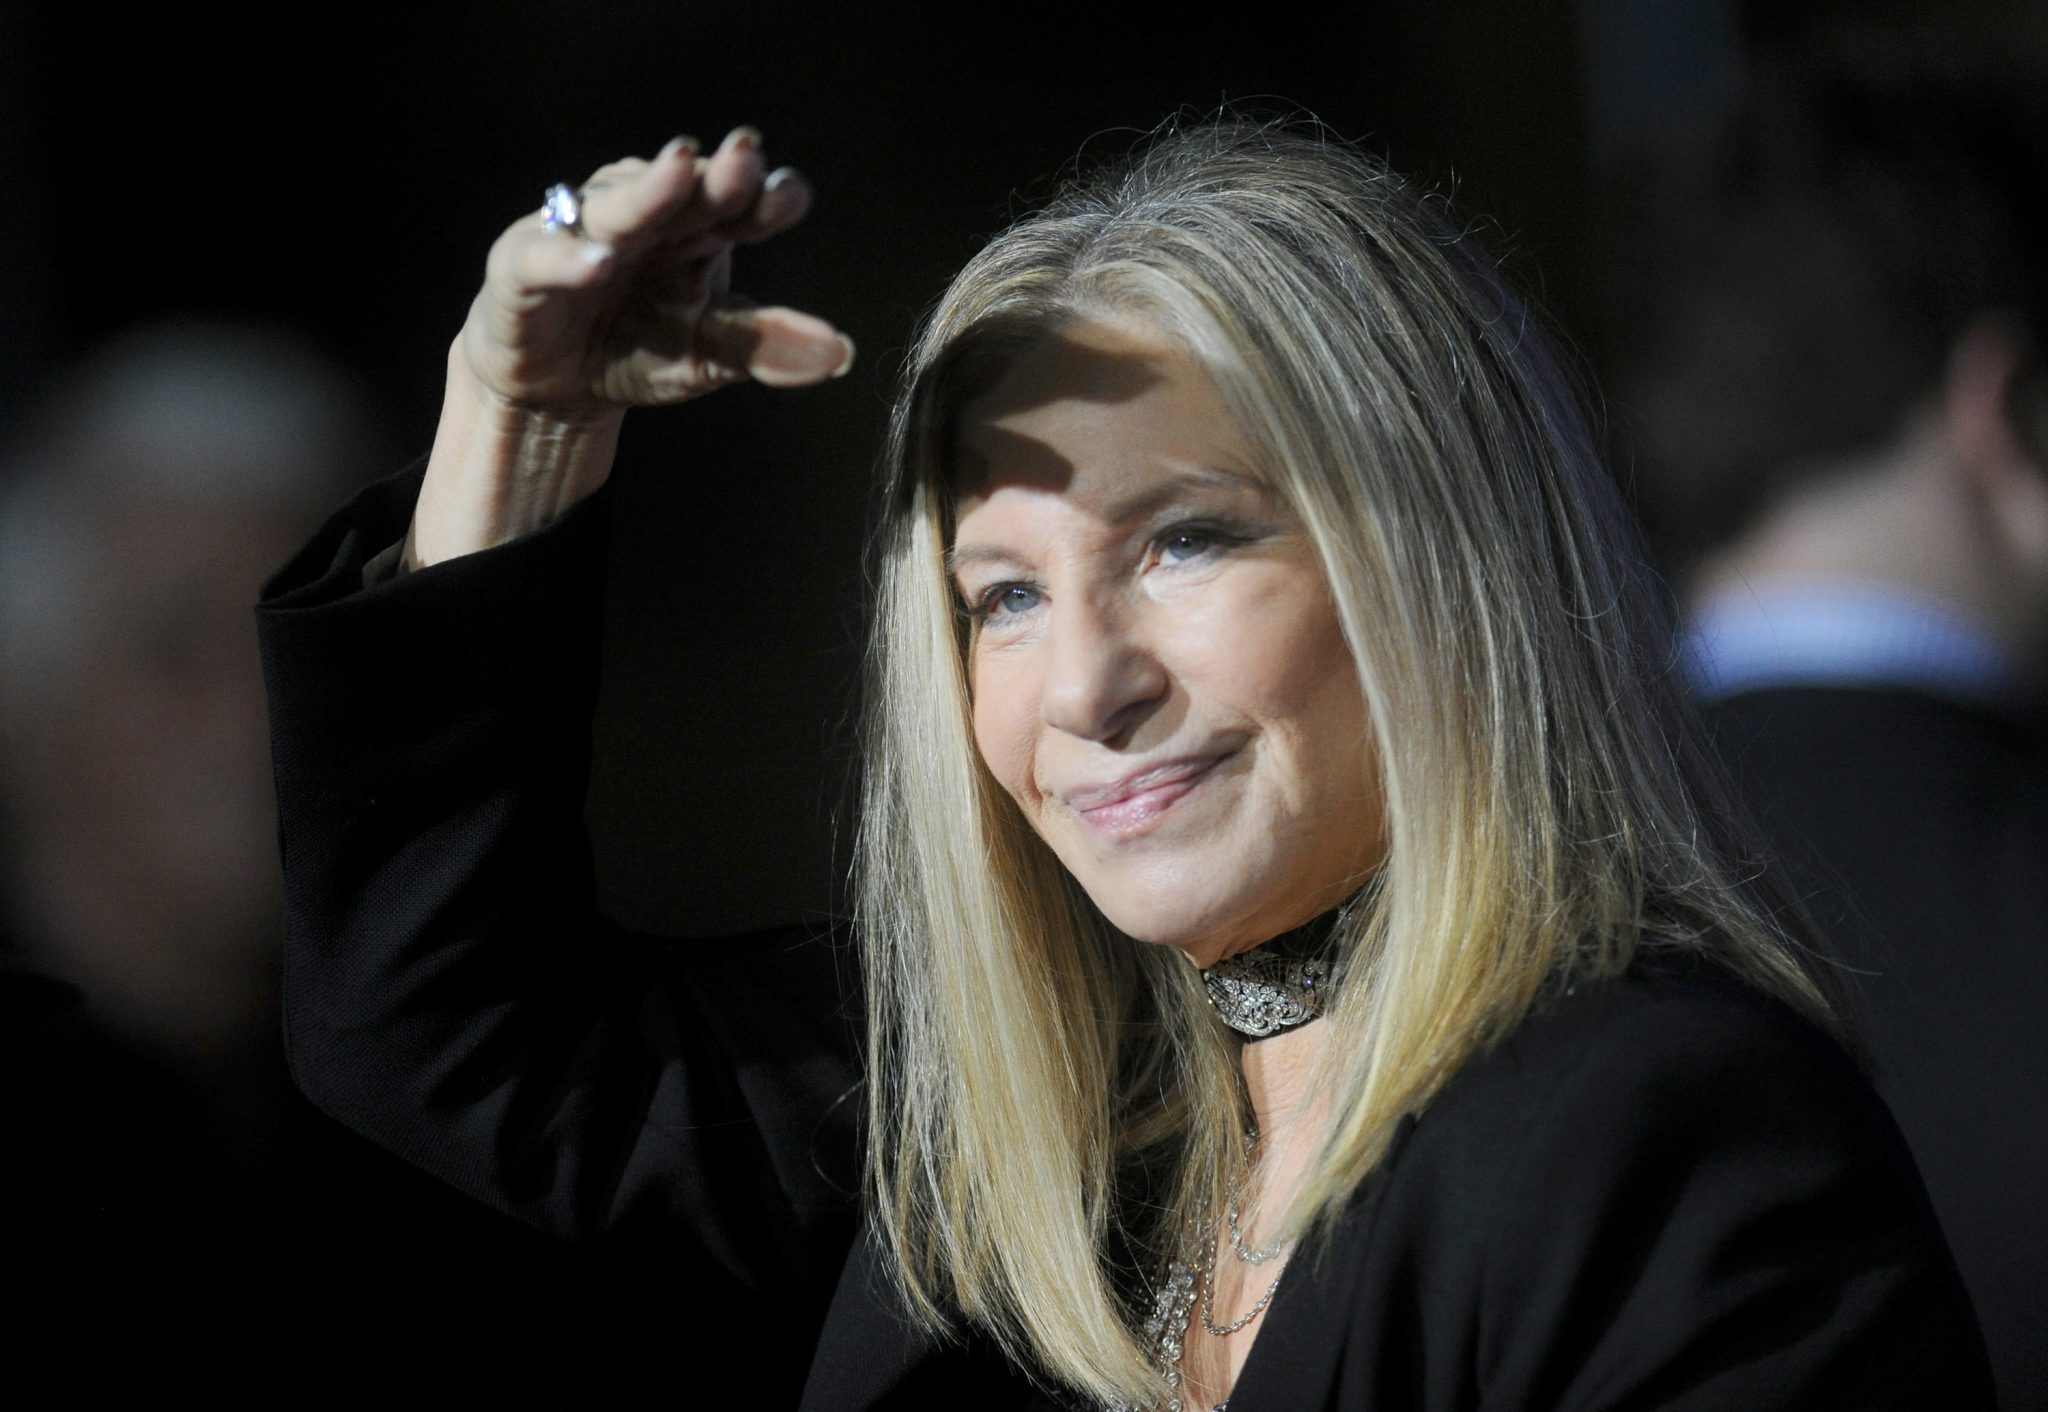 Barbra Streisand explains those problematic Michael Jackson comments